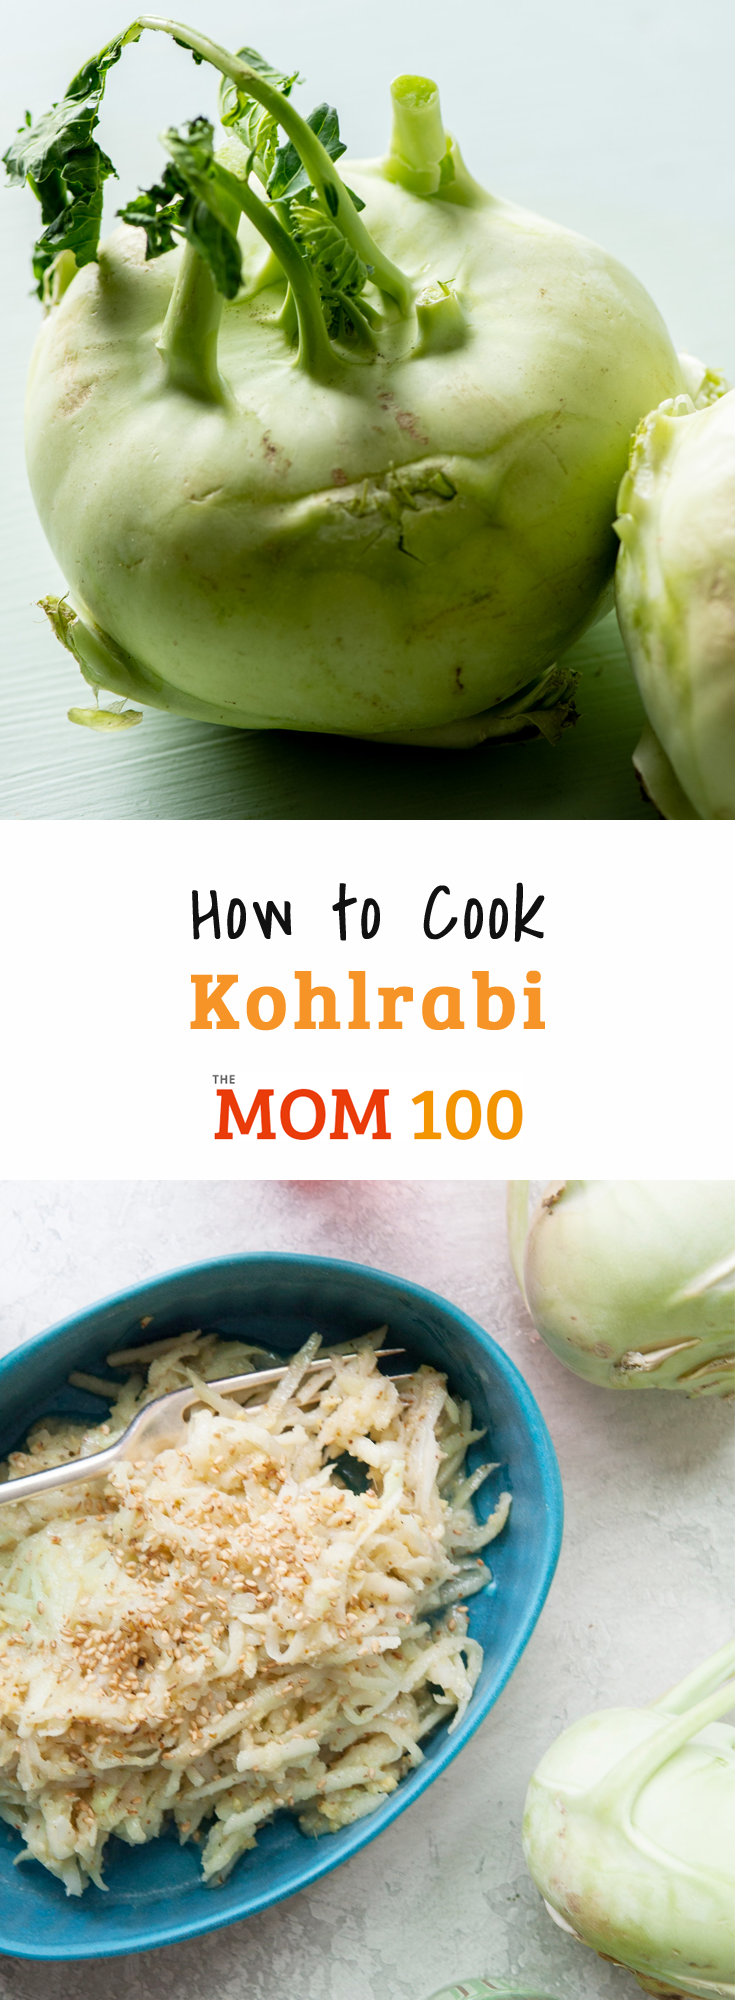 How to Cook Kohlrabi: Do you have questions about how to buy, store, prepare, and cook kohlrabi? We\'ve got lots of answers!